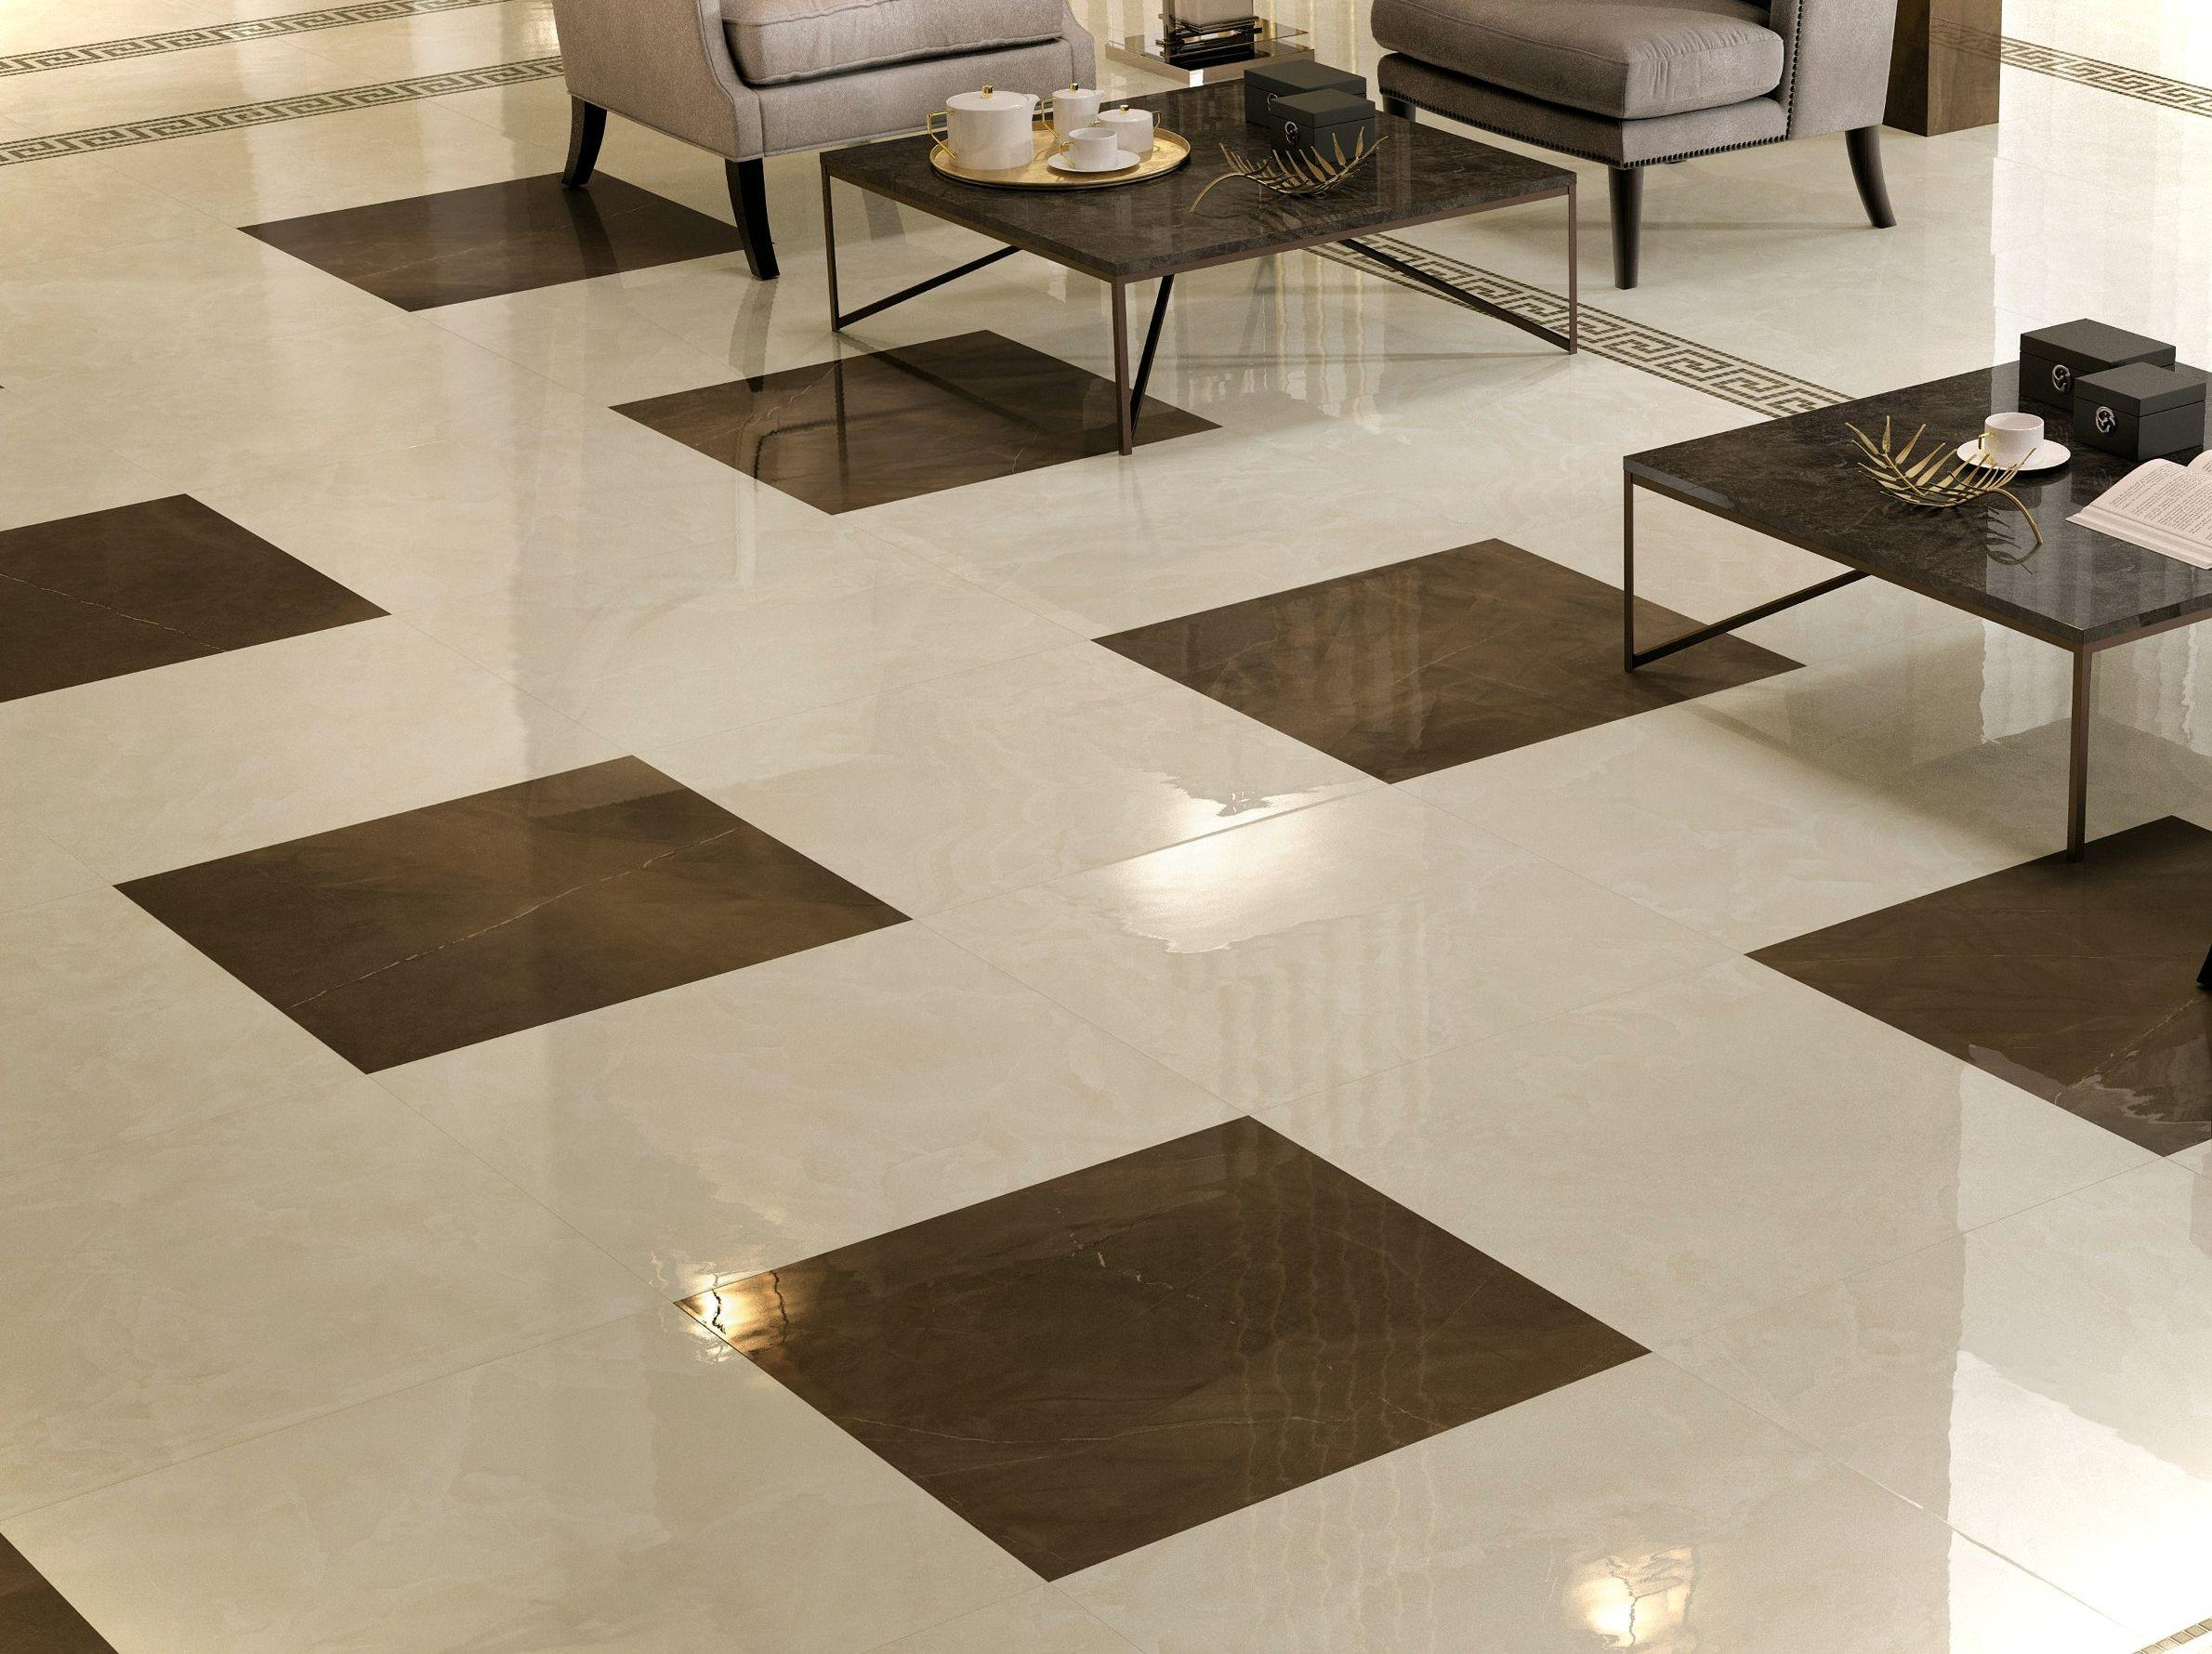 Tile Floor Design Patterns Idolza